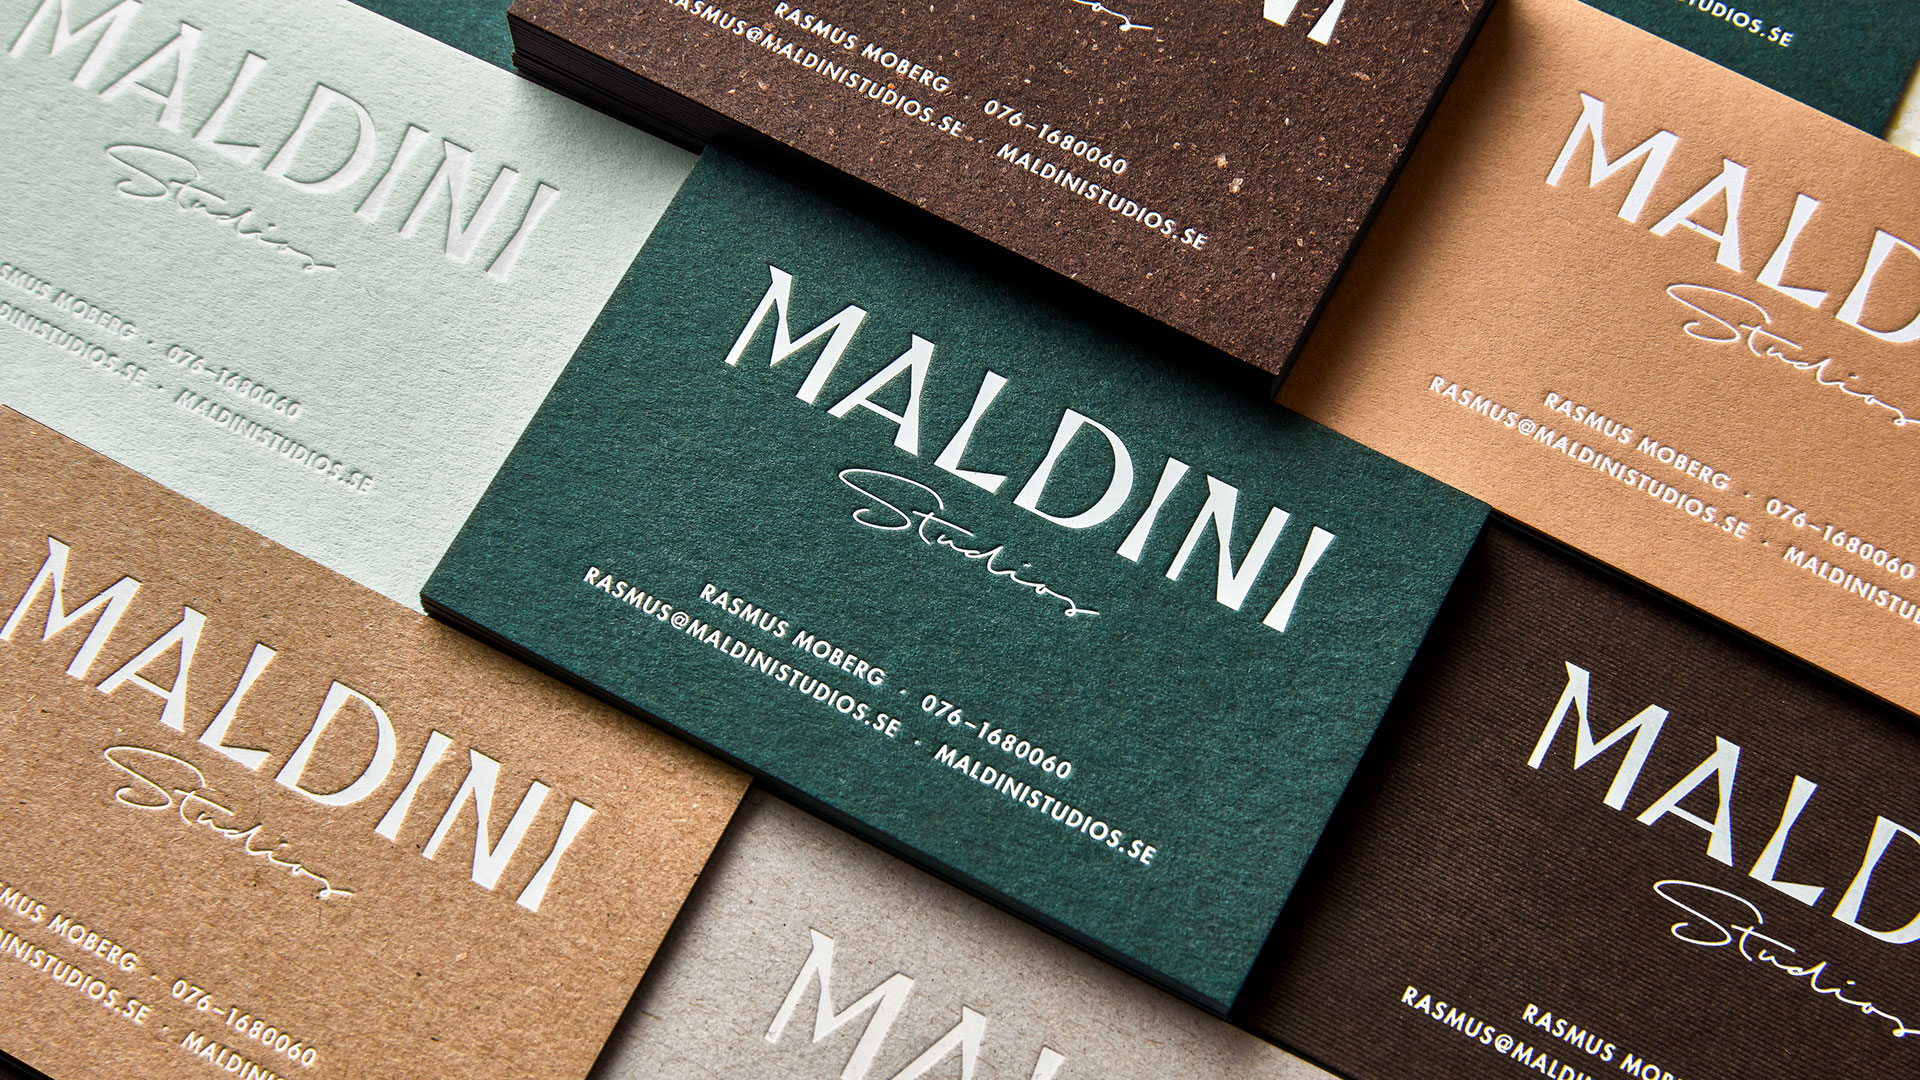 40 inspiring examples of letterpress business cards | Creative Bloq